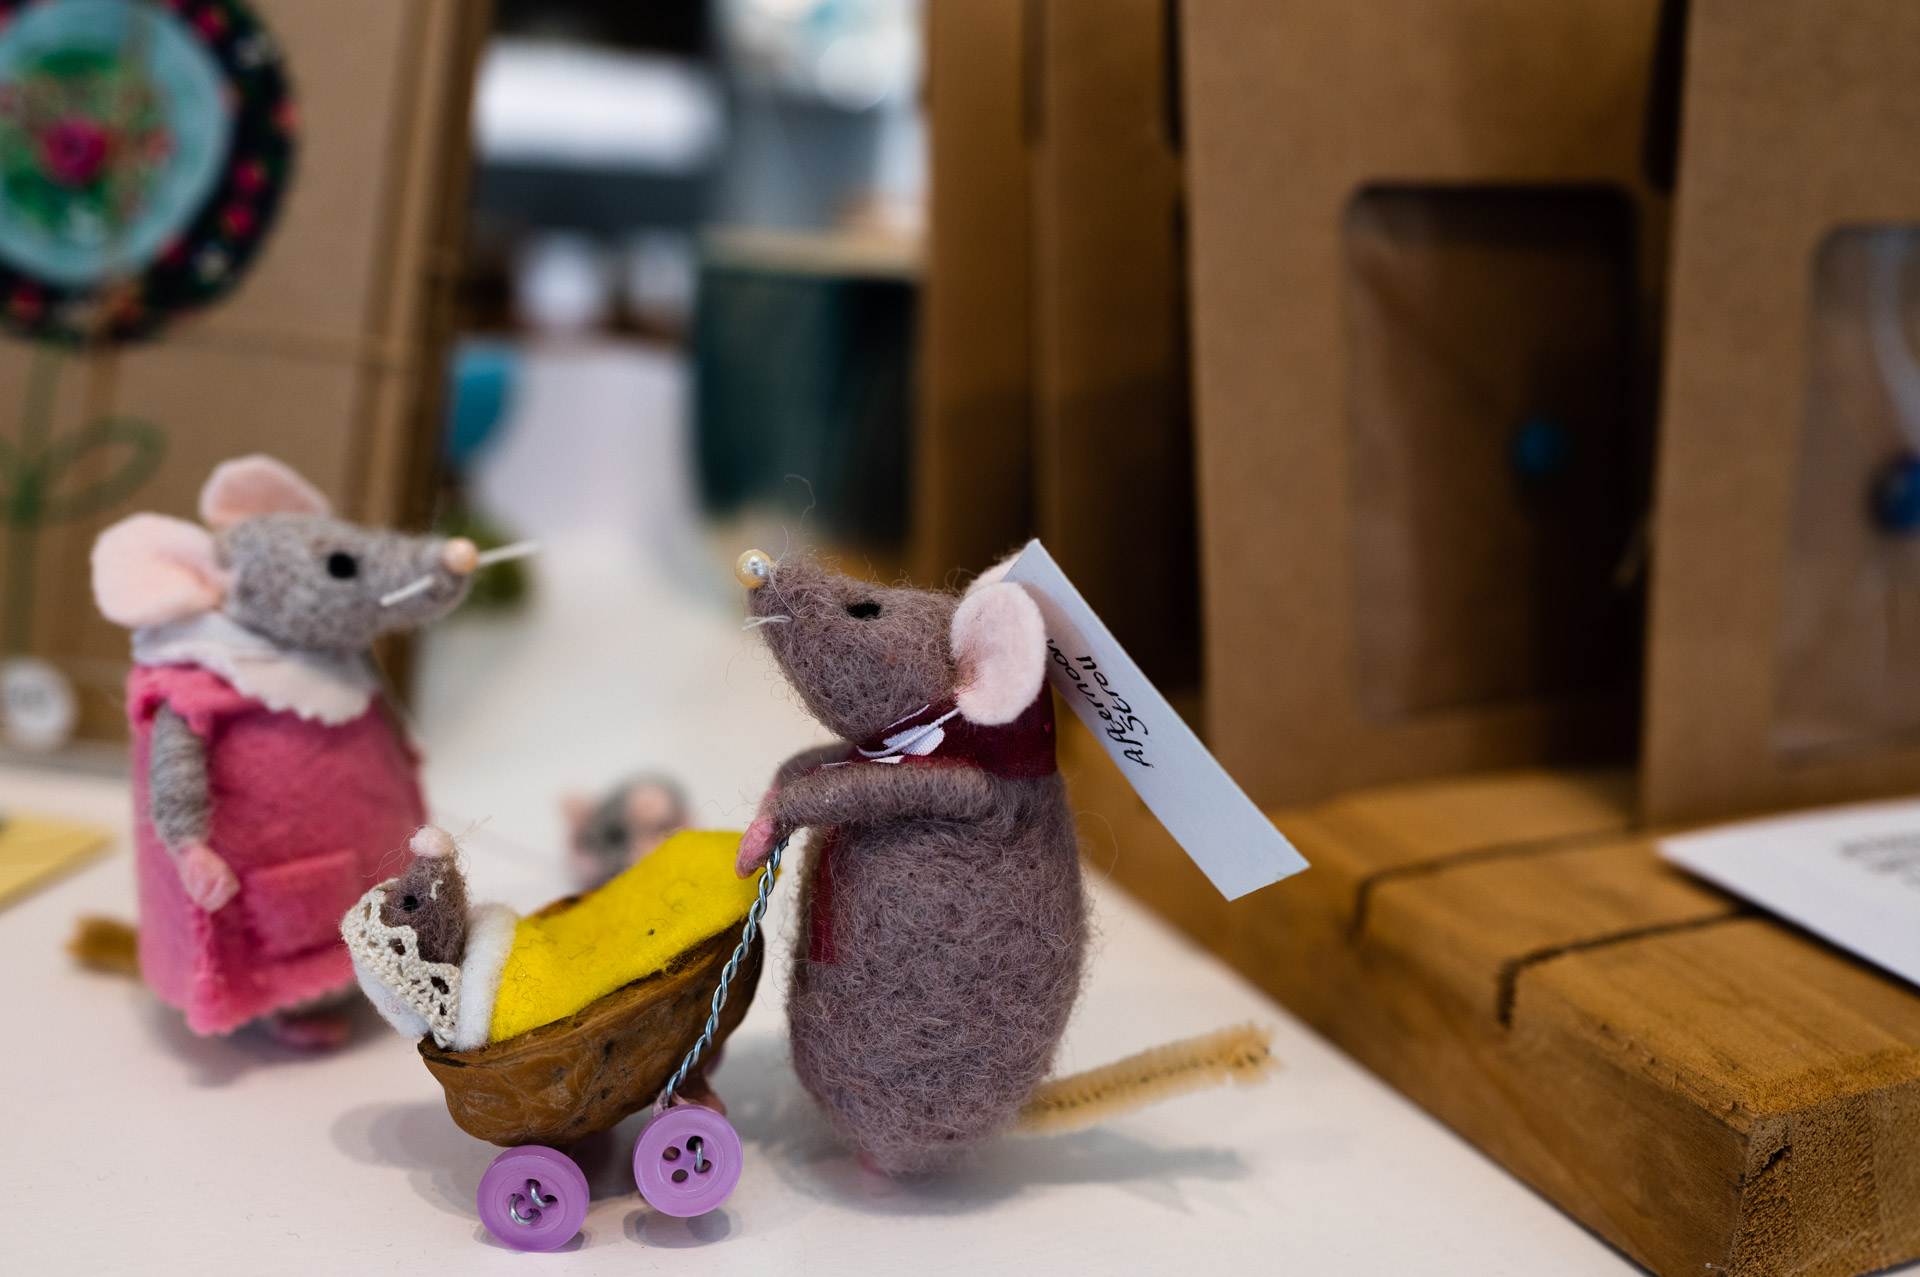 Blue Bramble Gallery St Ives felt mouse figures - afternoon stroll